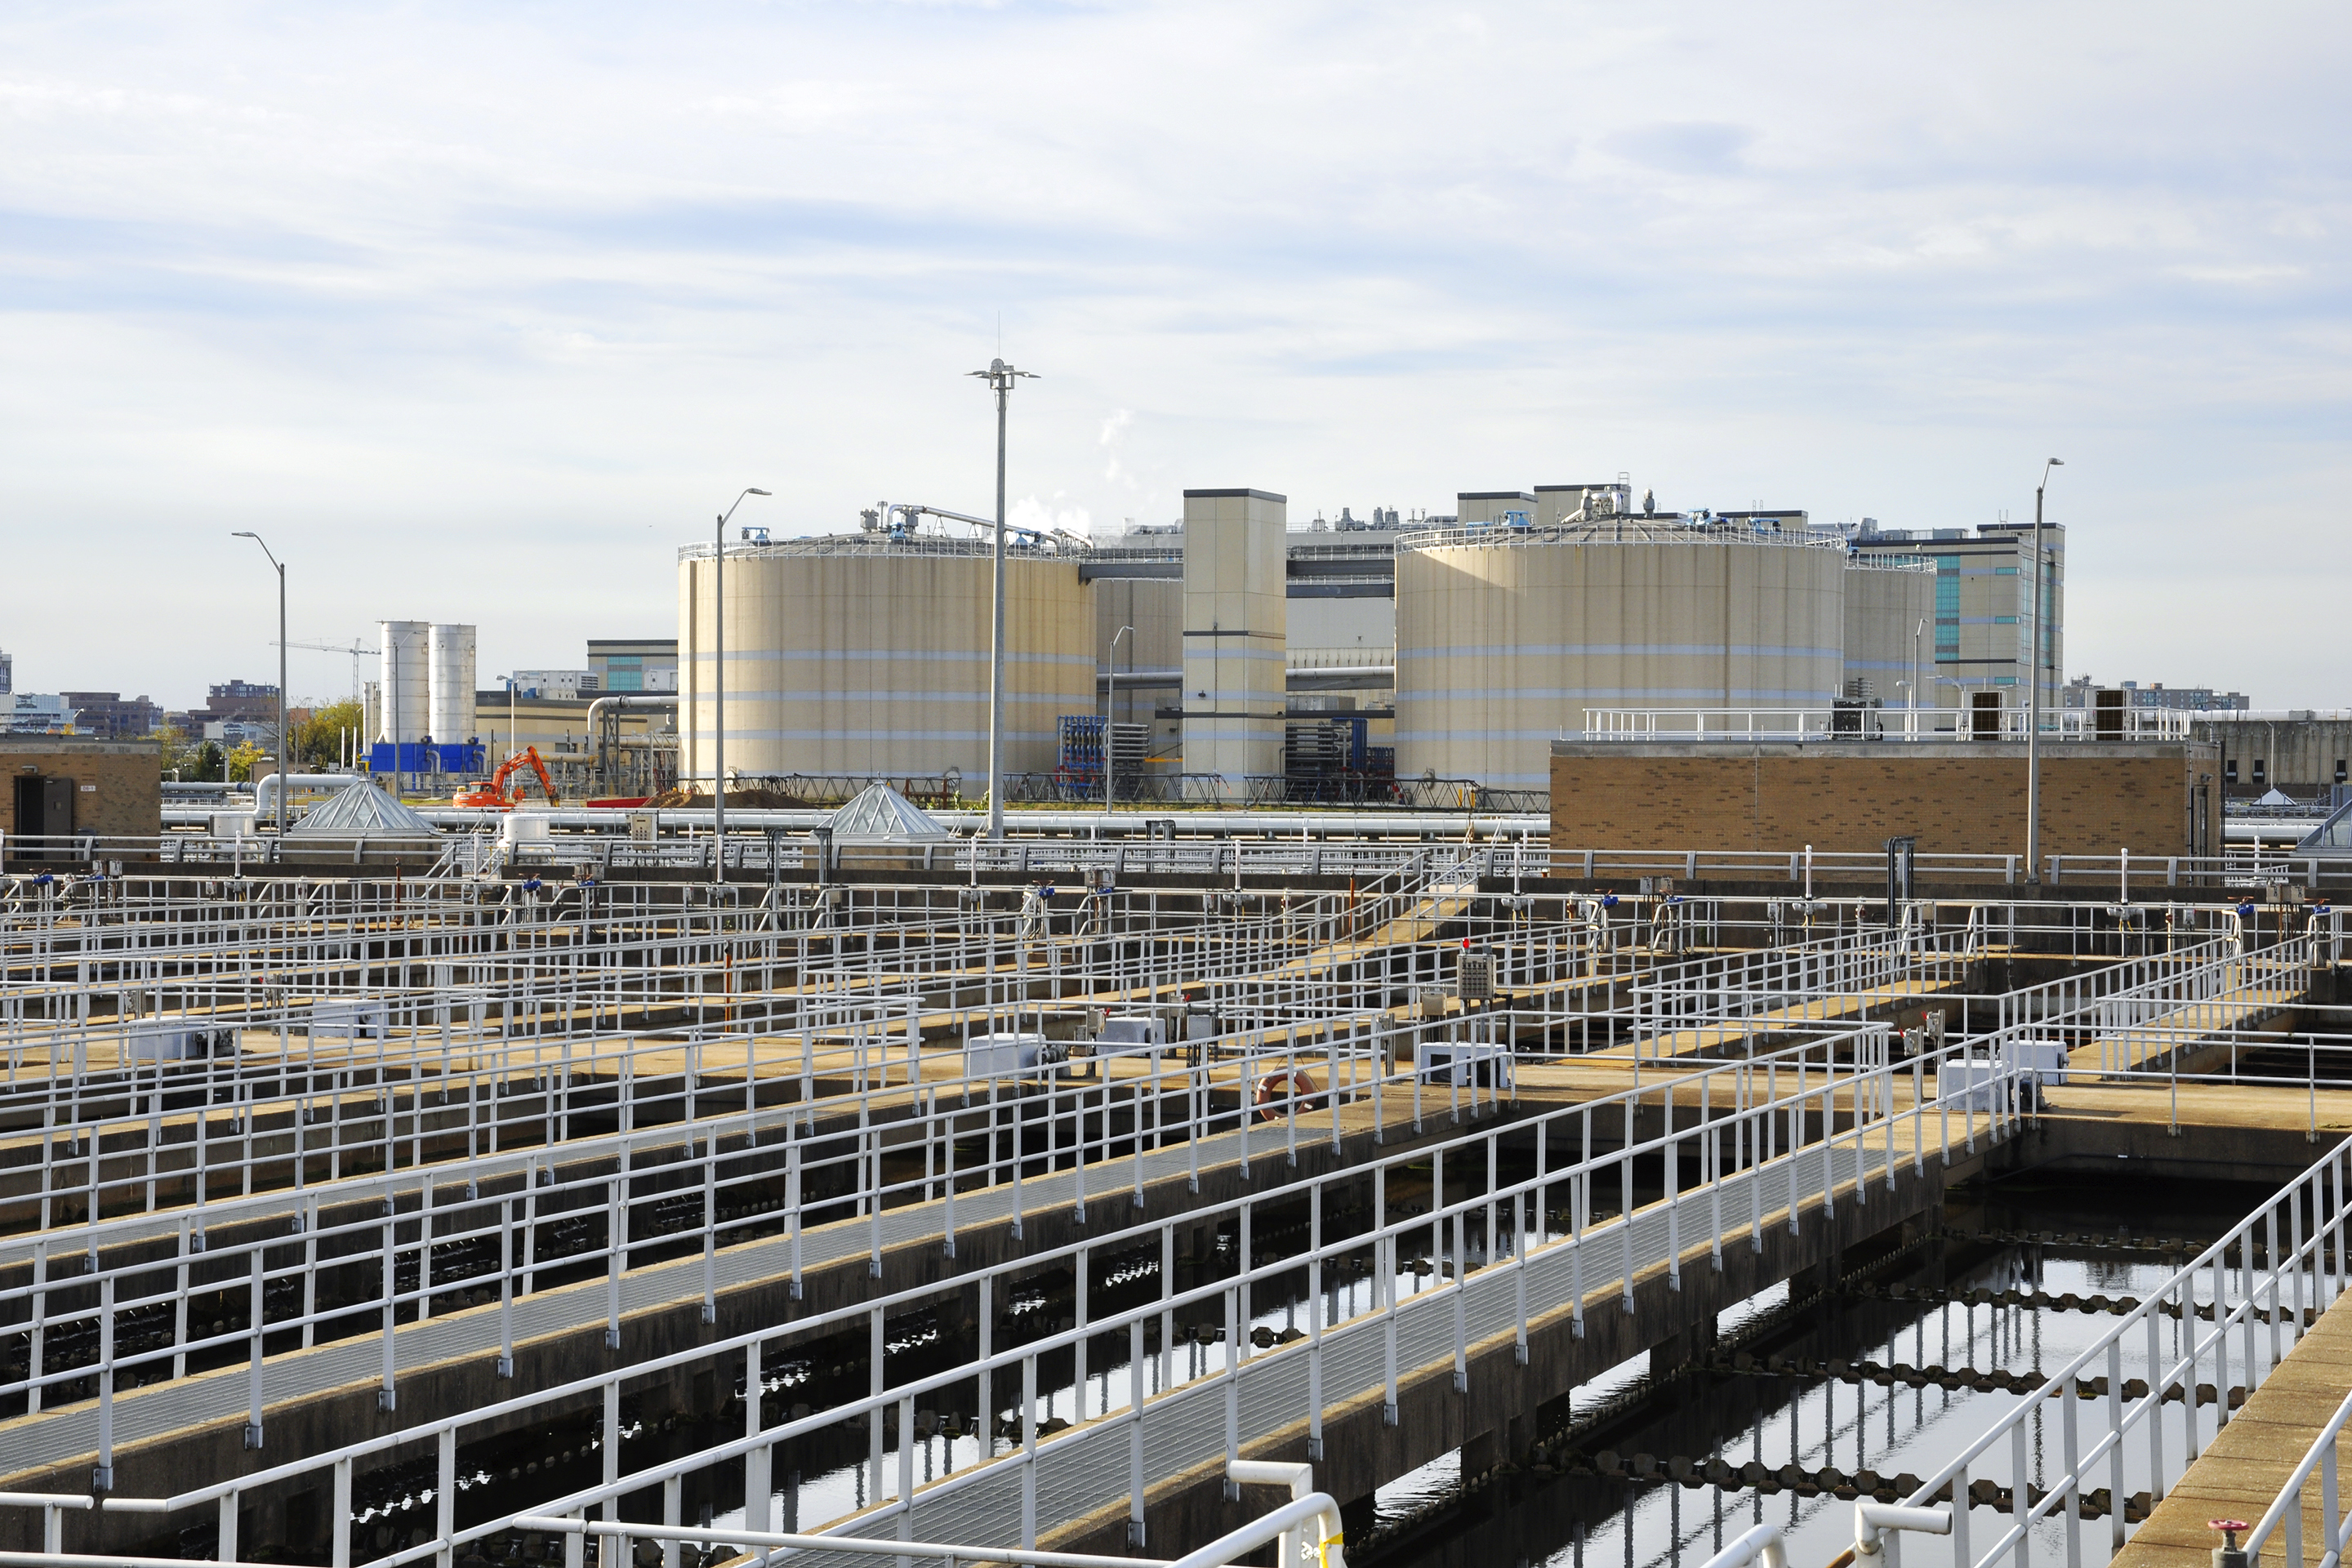 DC Water's waste-treatment facilities, with it digesters at rear.